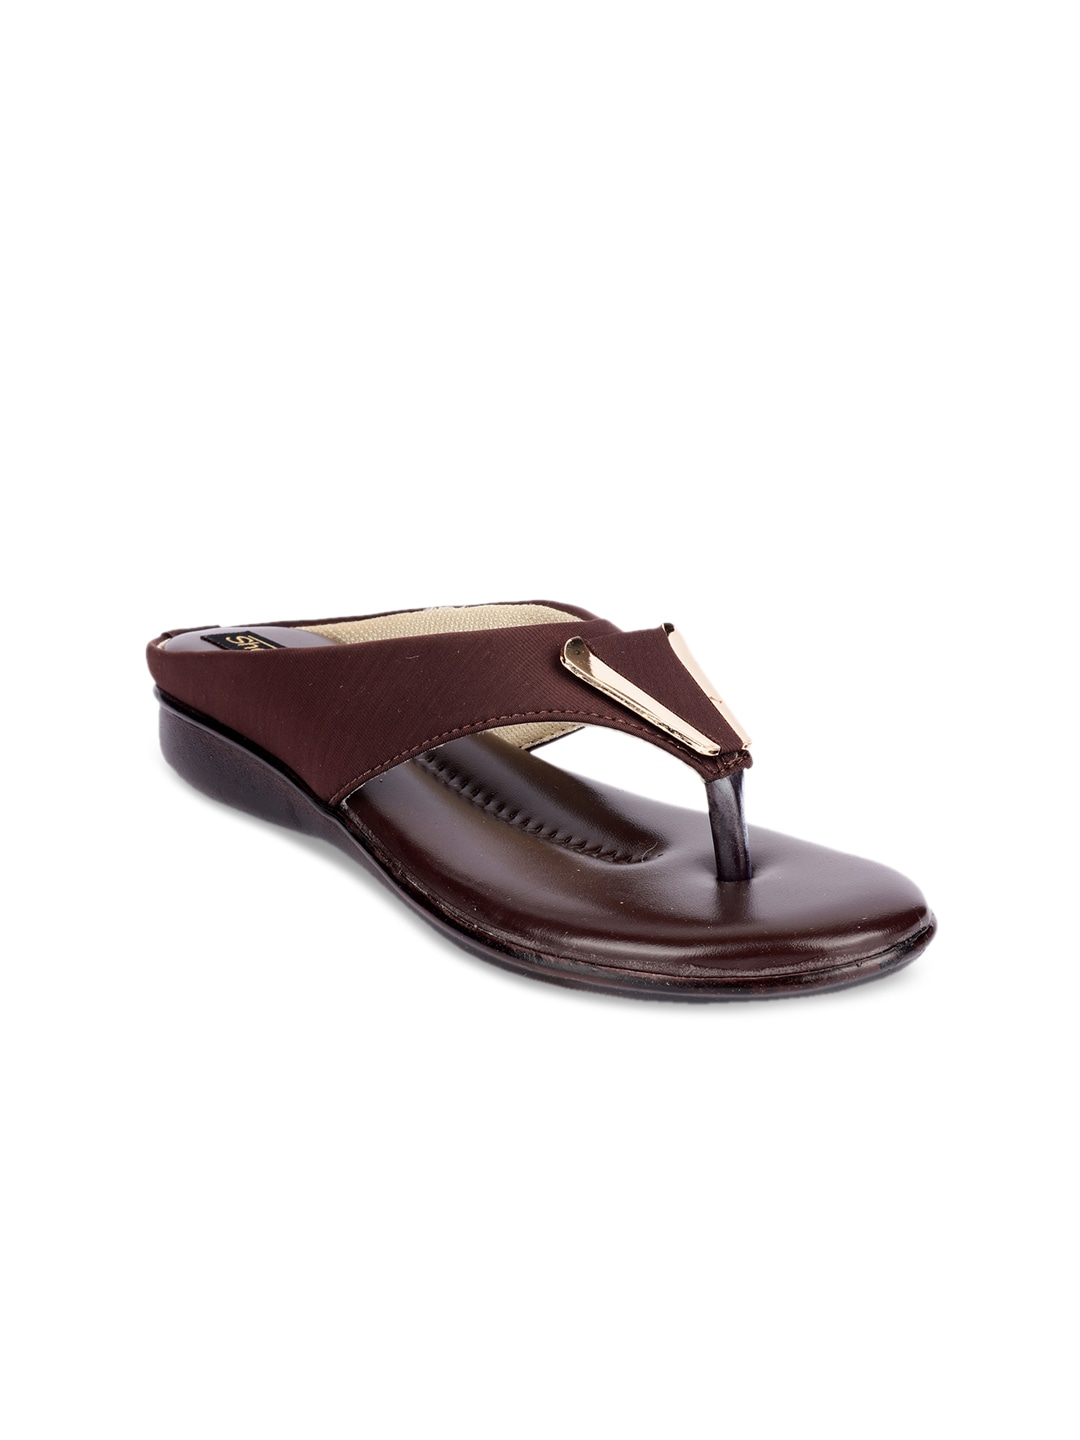 6476487c59 Boat Shoes Casual Flats - Buy Boat Shoes Casual Flats online in India